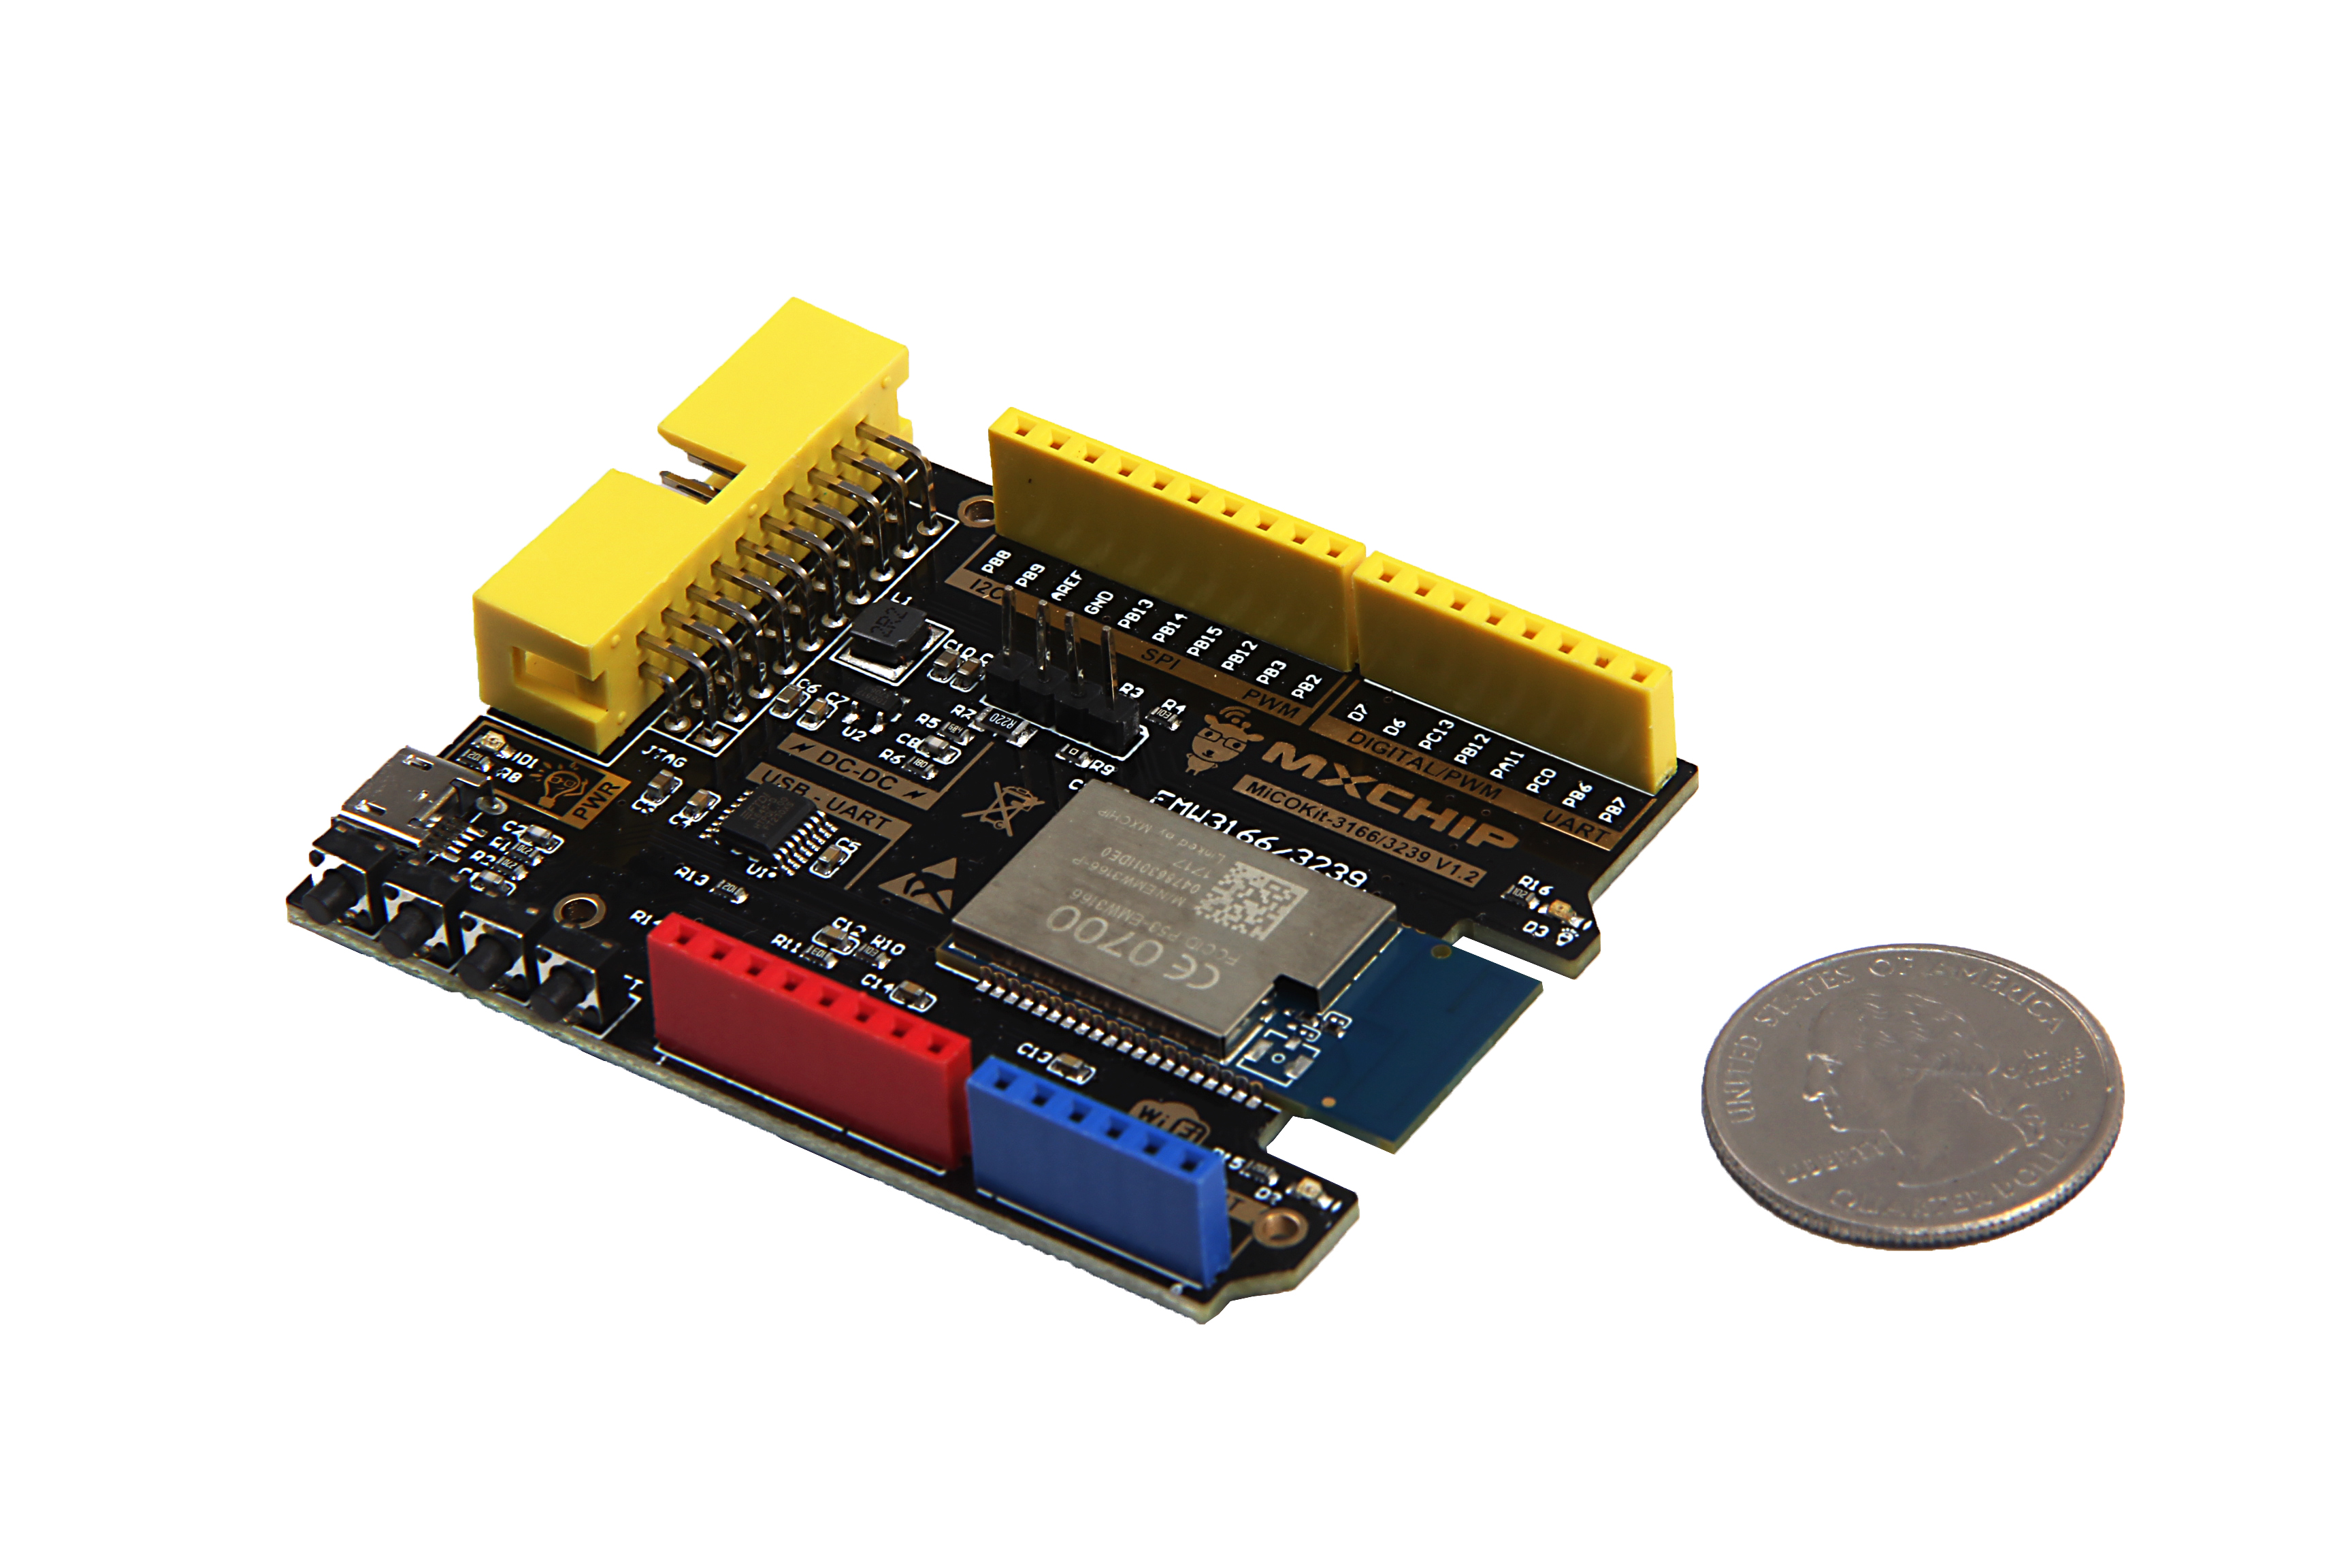 MiCOKit-3166 Development Board